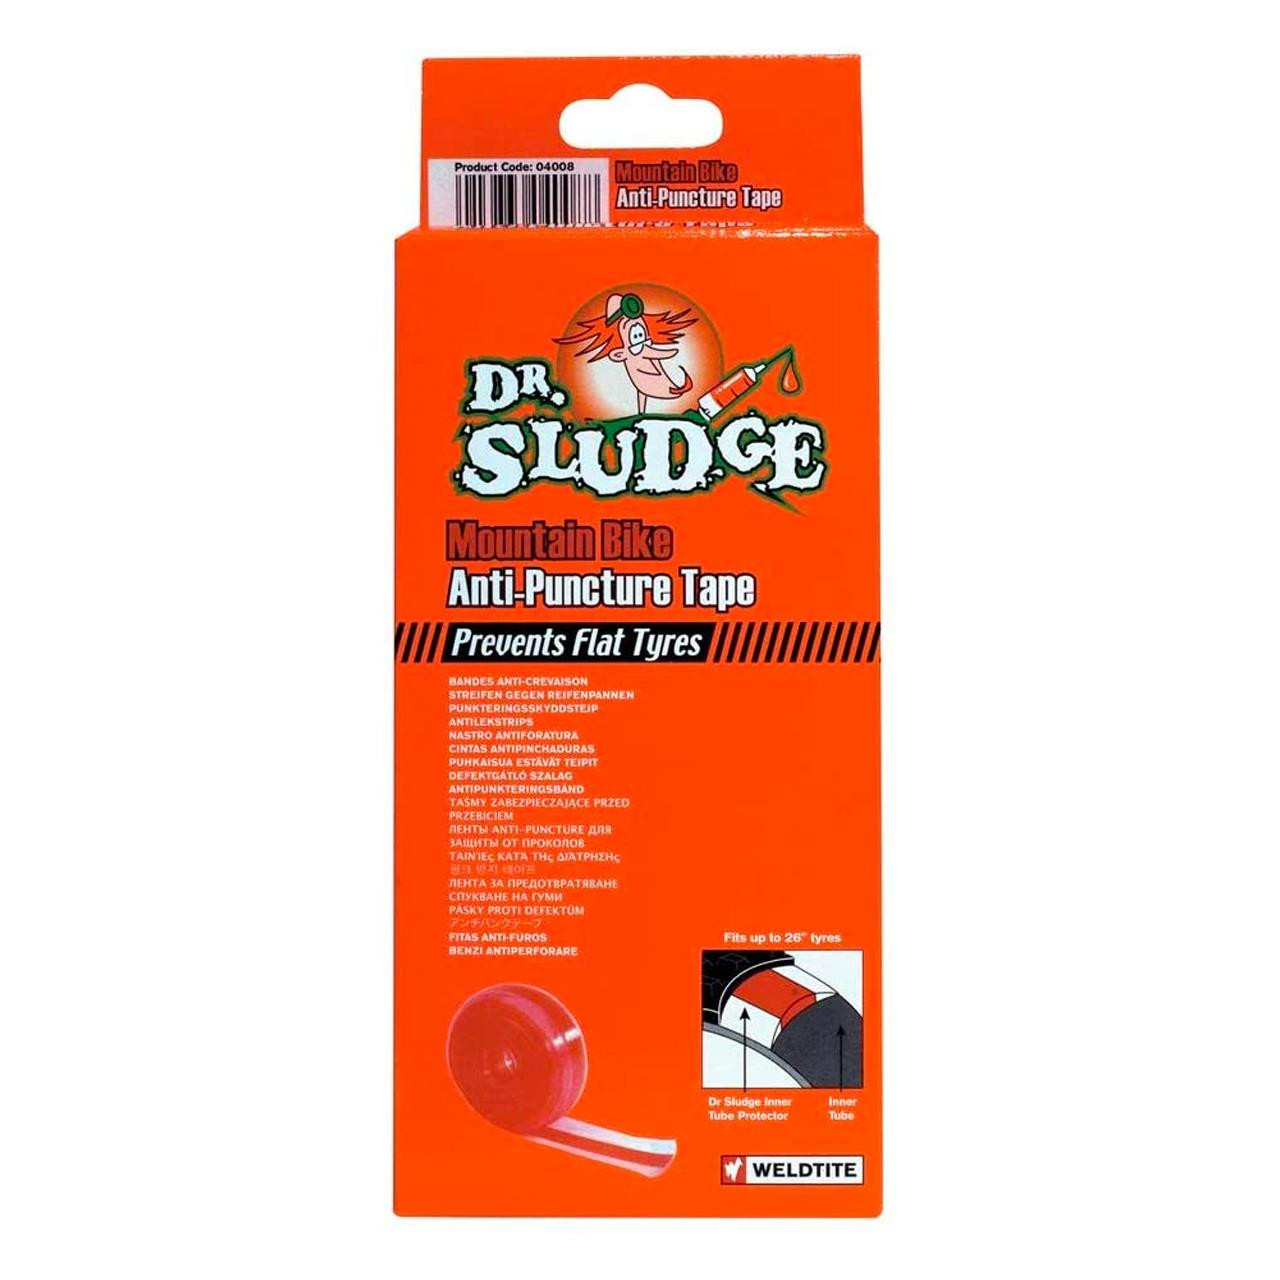 Weldtite Puncture Protection Bands